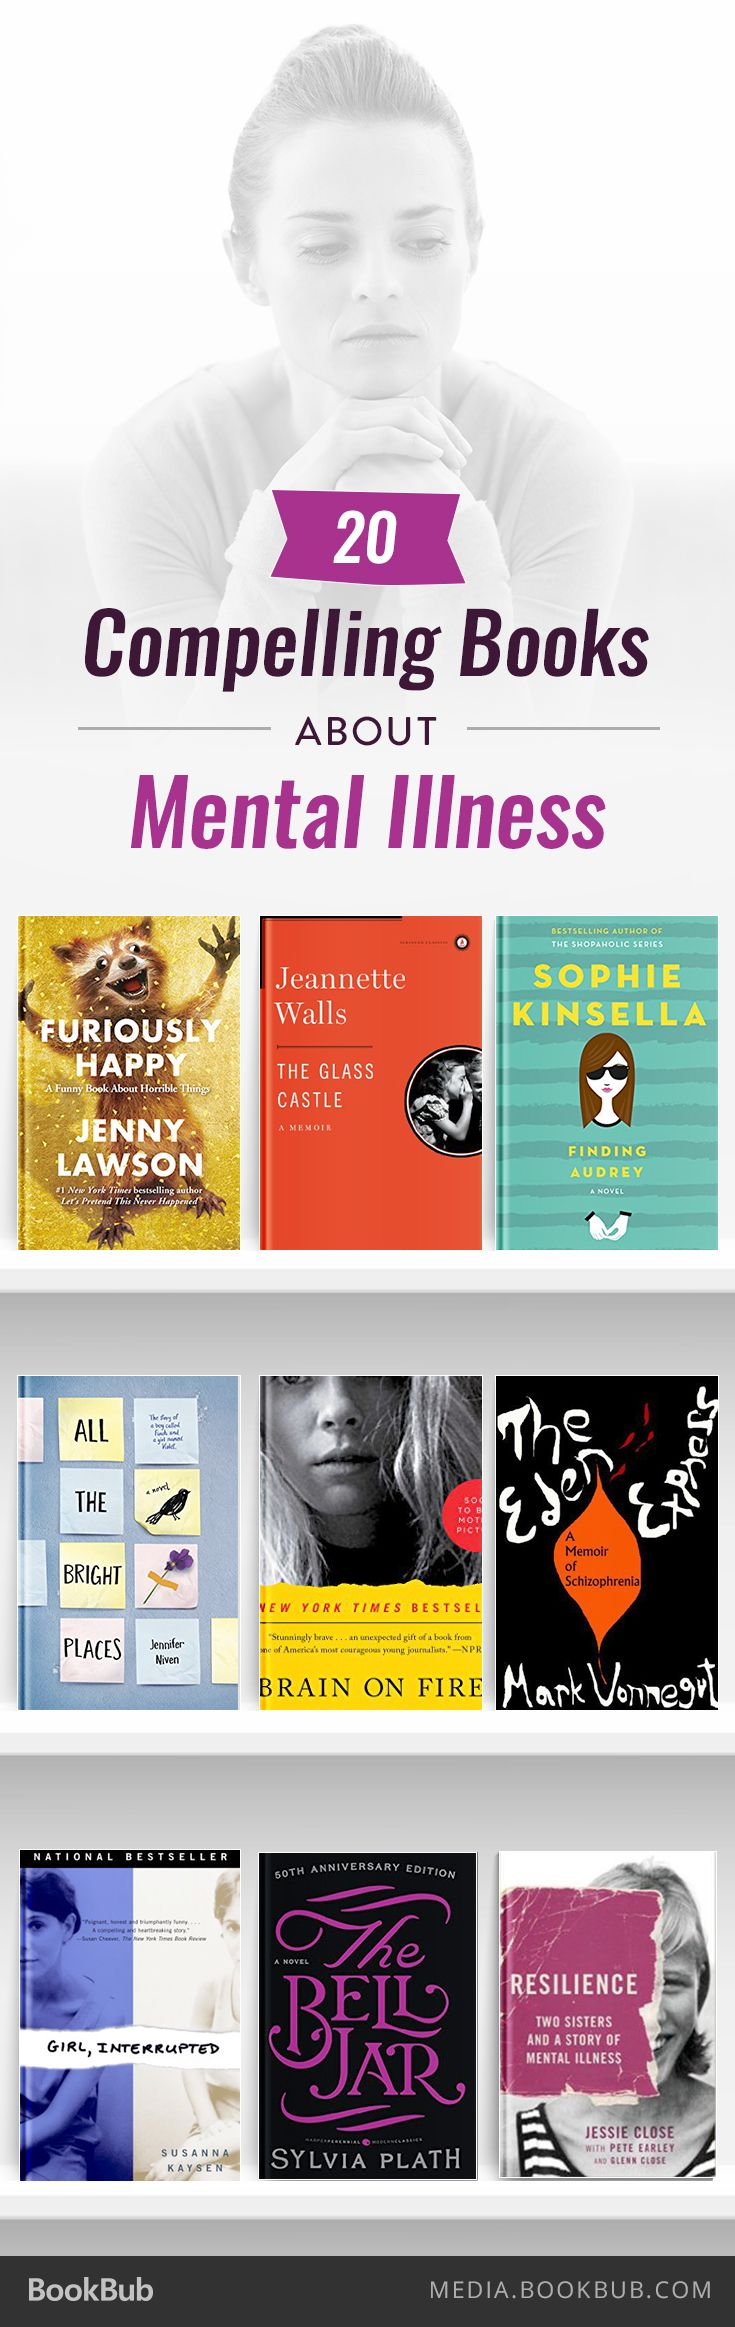 20 compelling books about mental illness.